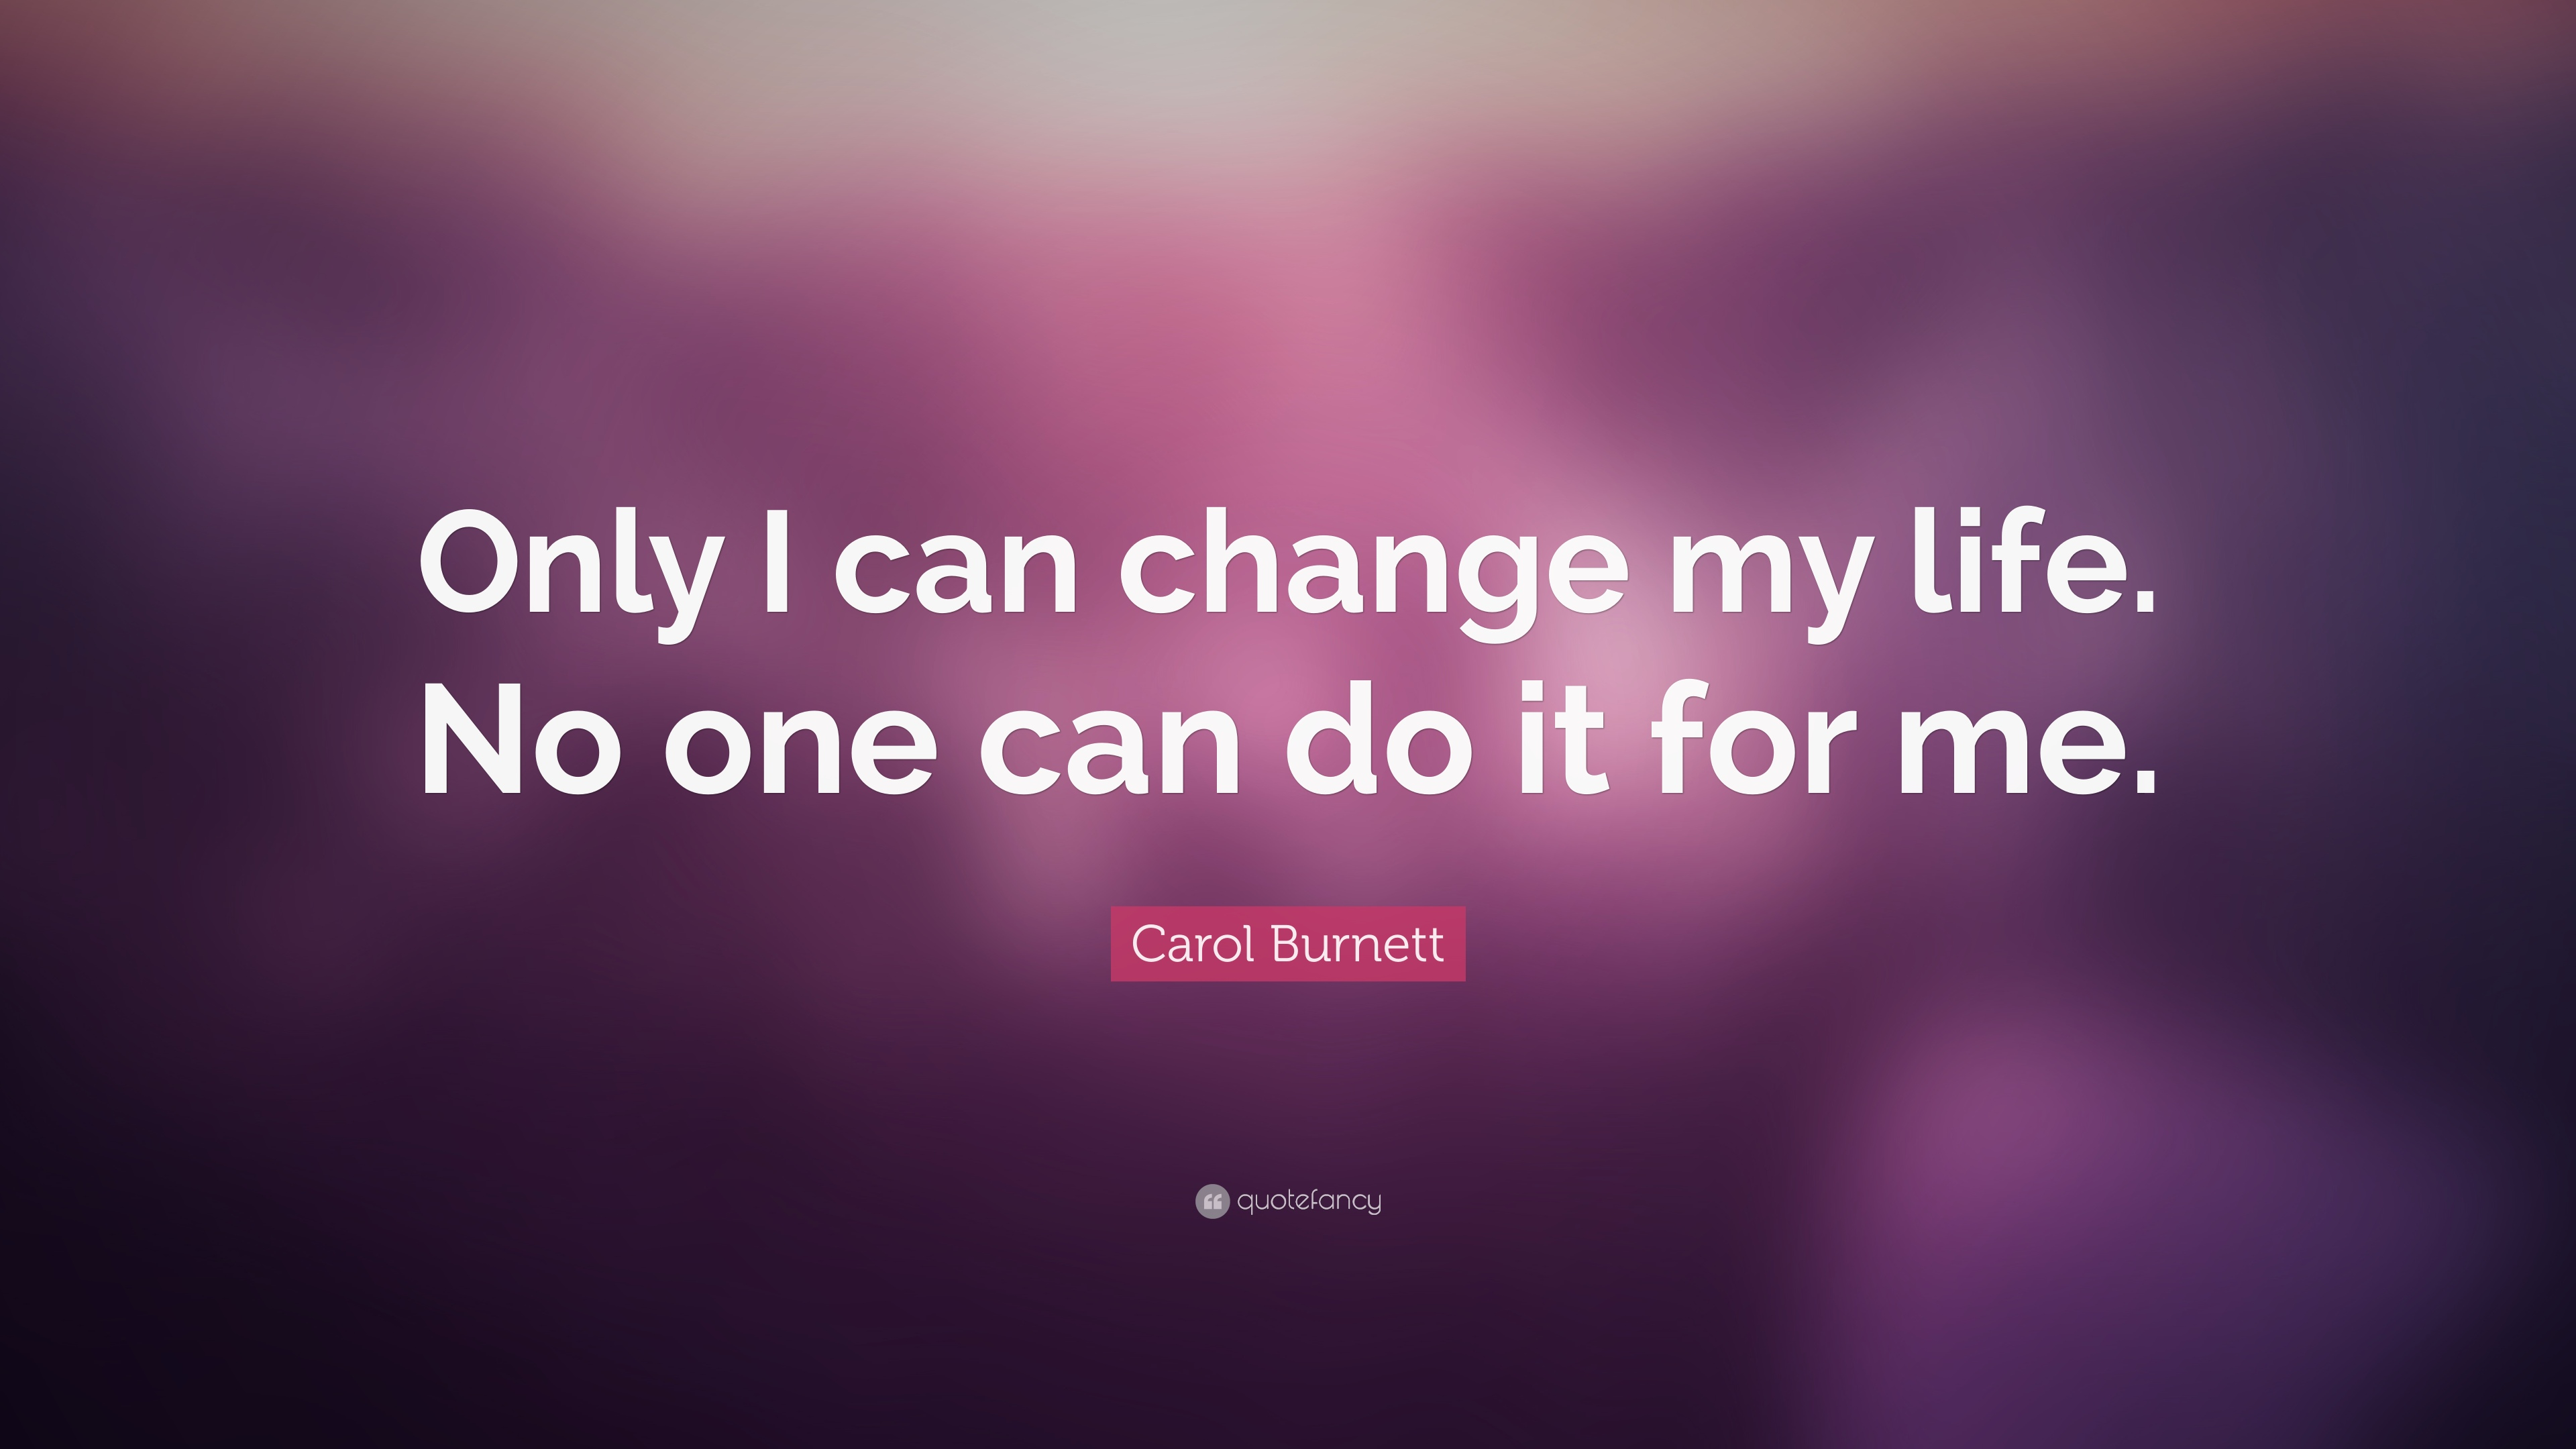 Carol Burnett Quote Only I Can Change My Life No One Do